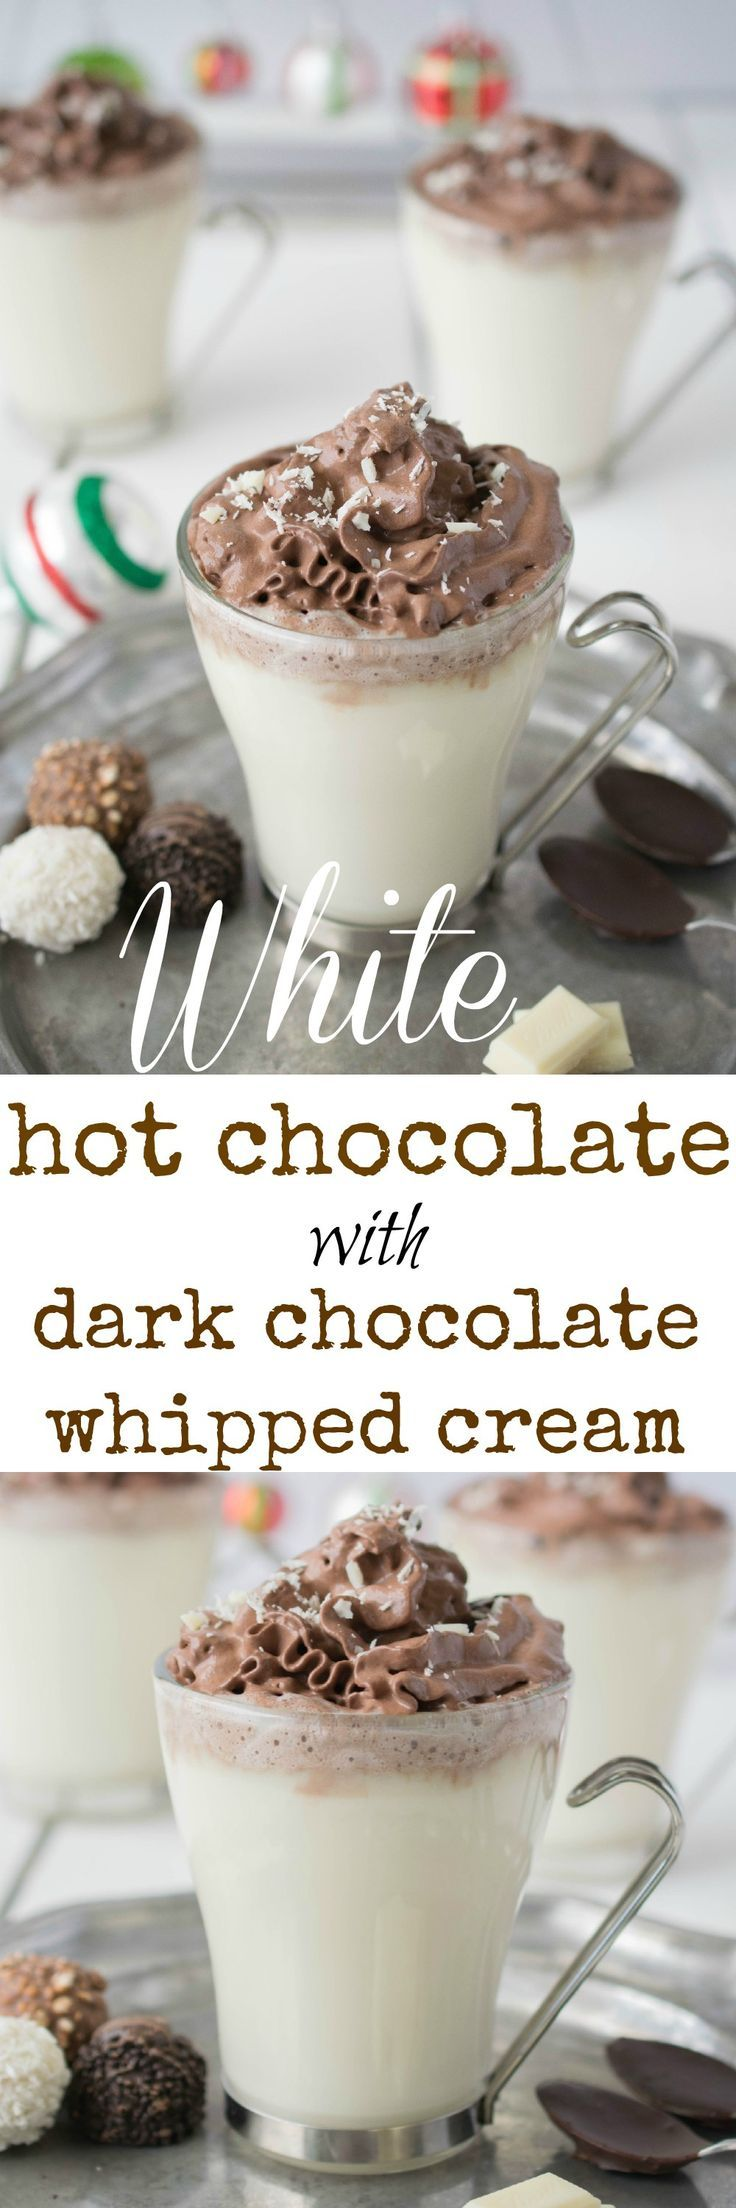 White hot chocolate with dark chocolate whipped cream piped on the top. It's a chocolate-fest that is a warm and would make a perfect after Christmas dinner dessert.